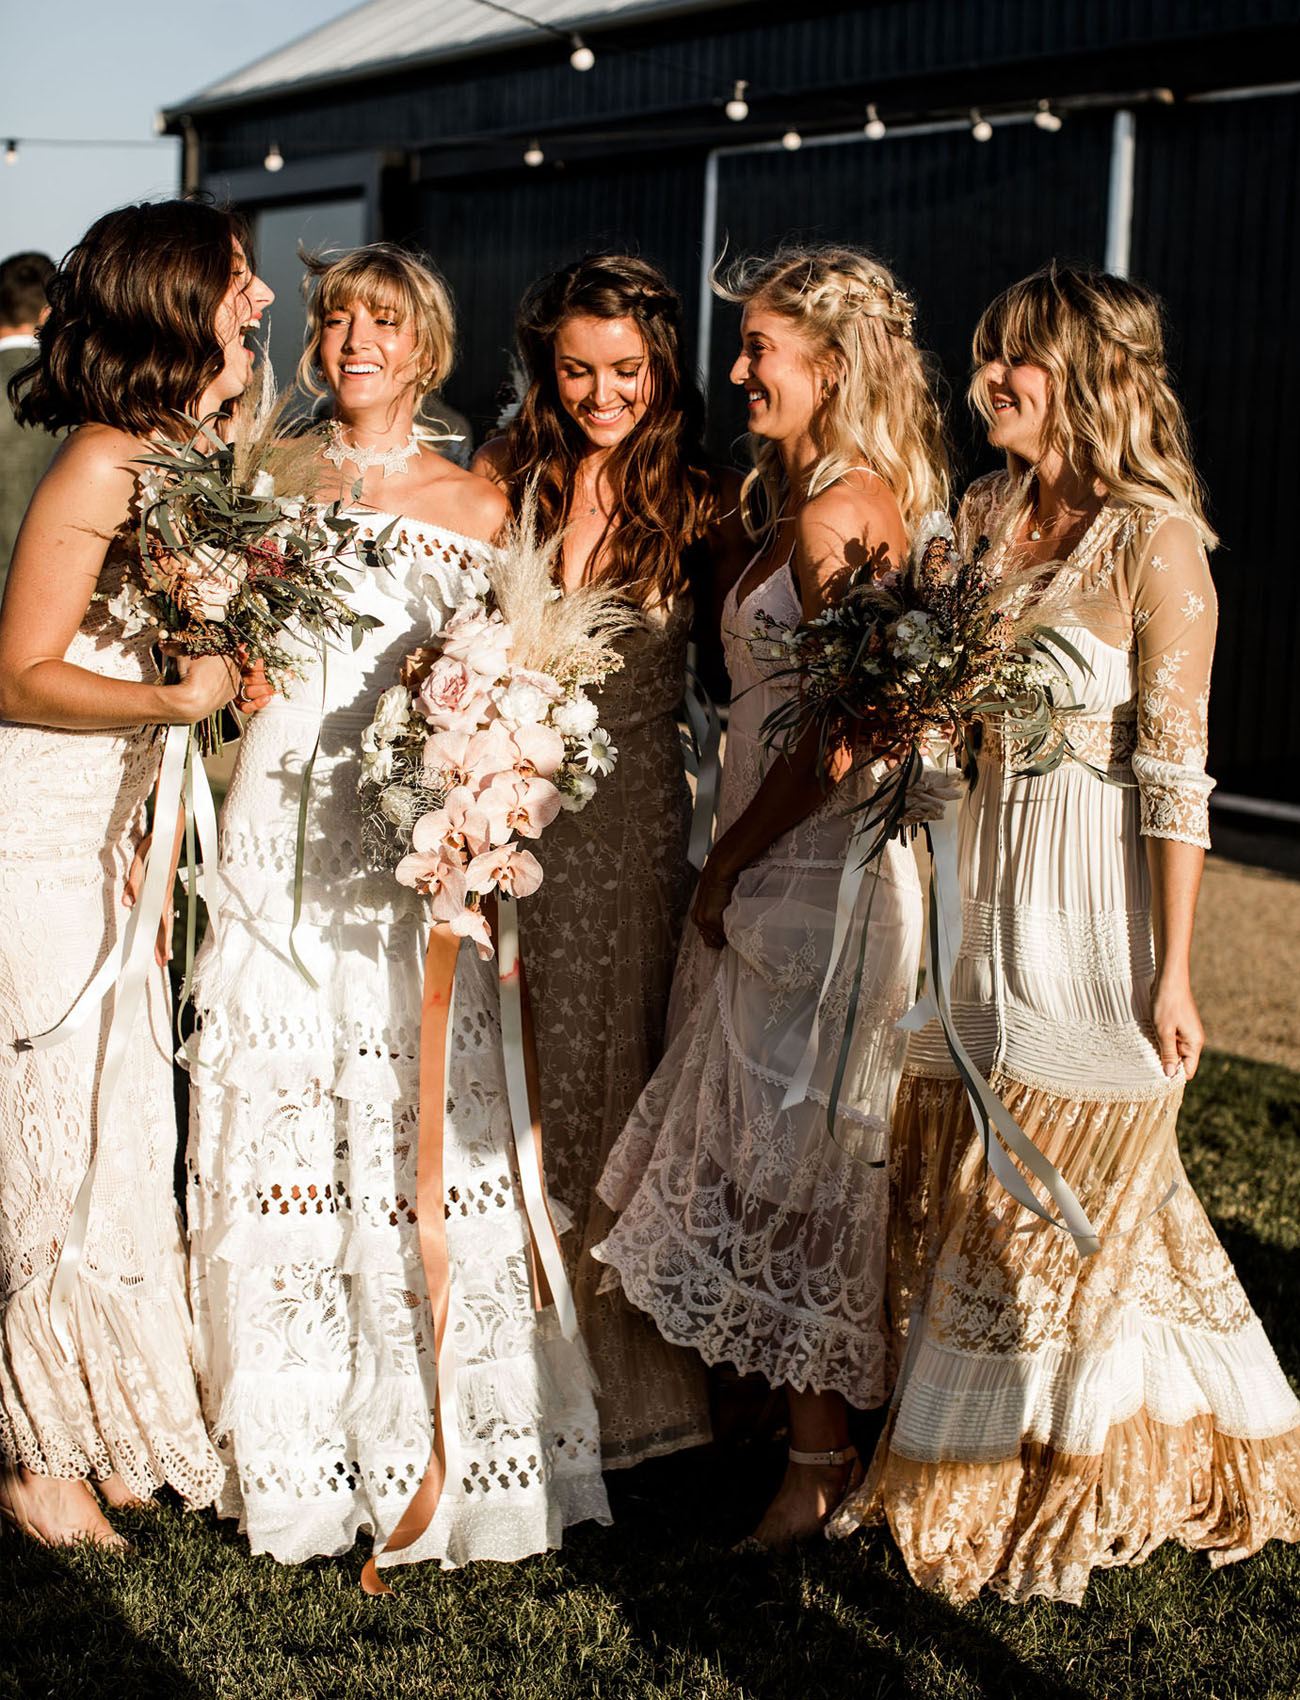 Festival Inspired Australia Wedding